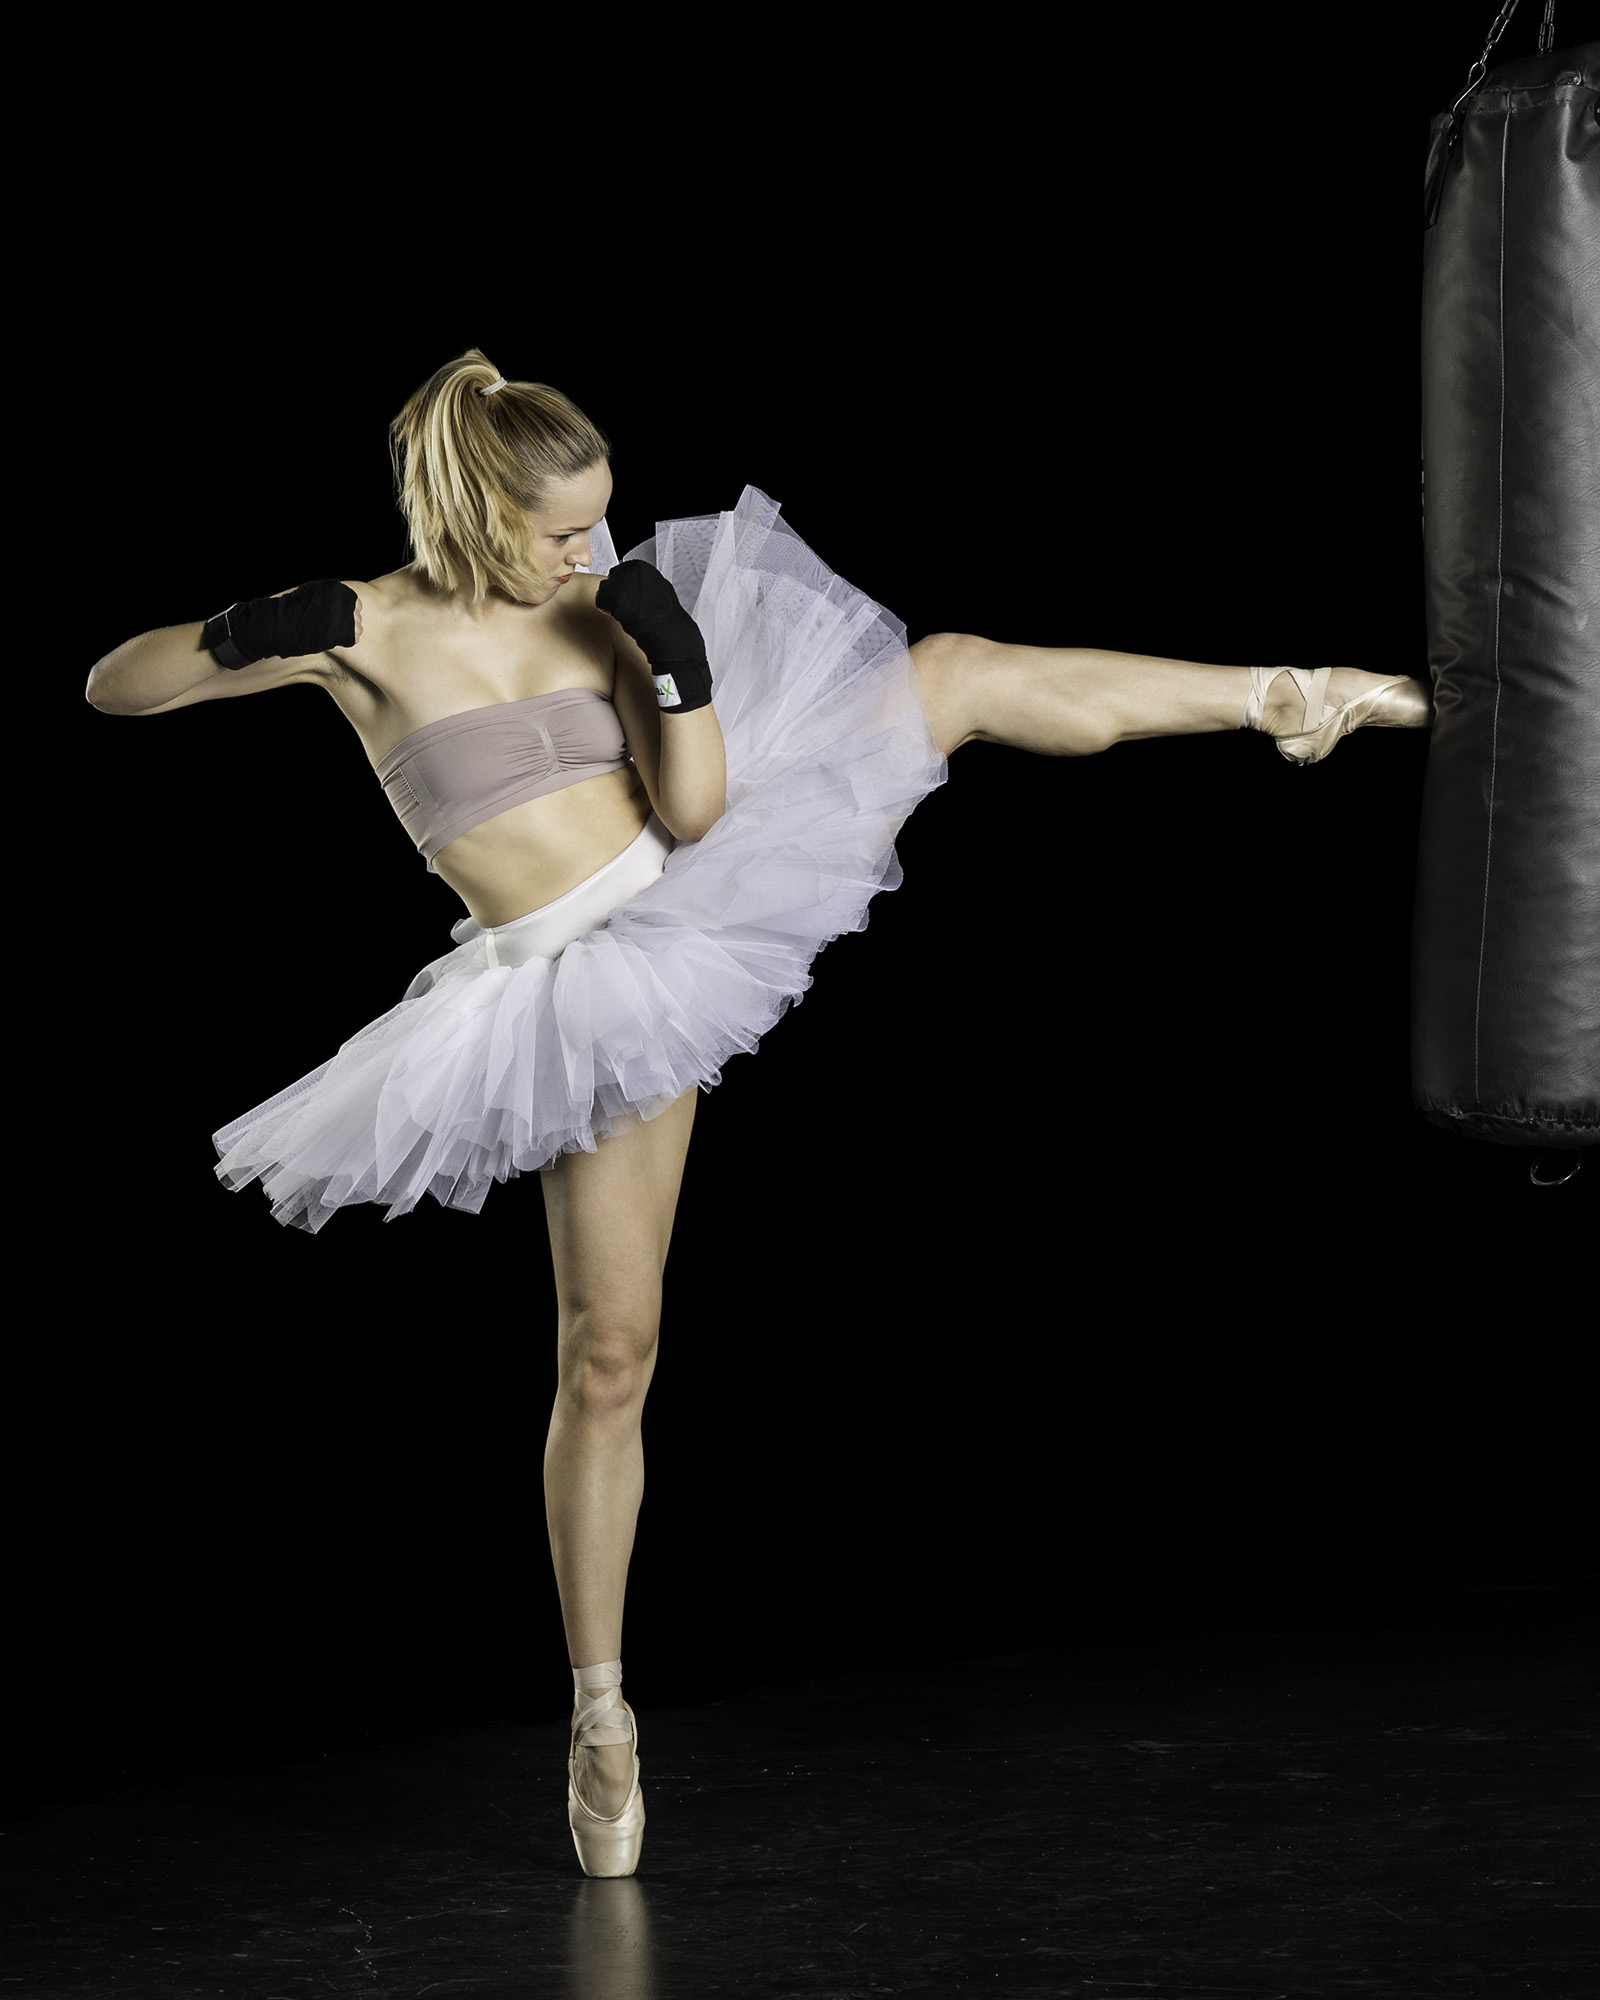 ballerina-in-tutu-kicking-heavy-bag.jpg